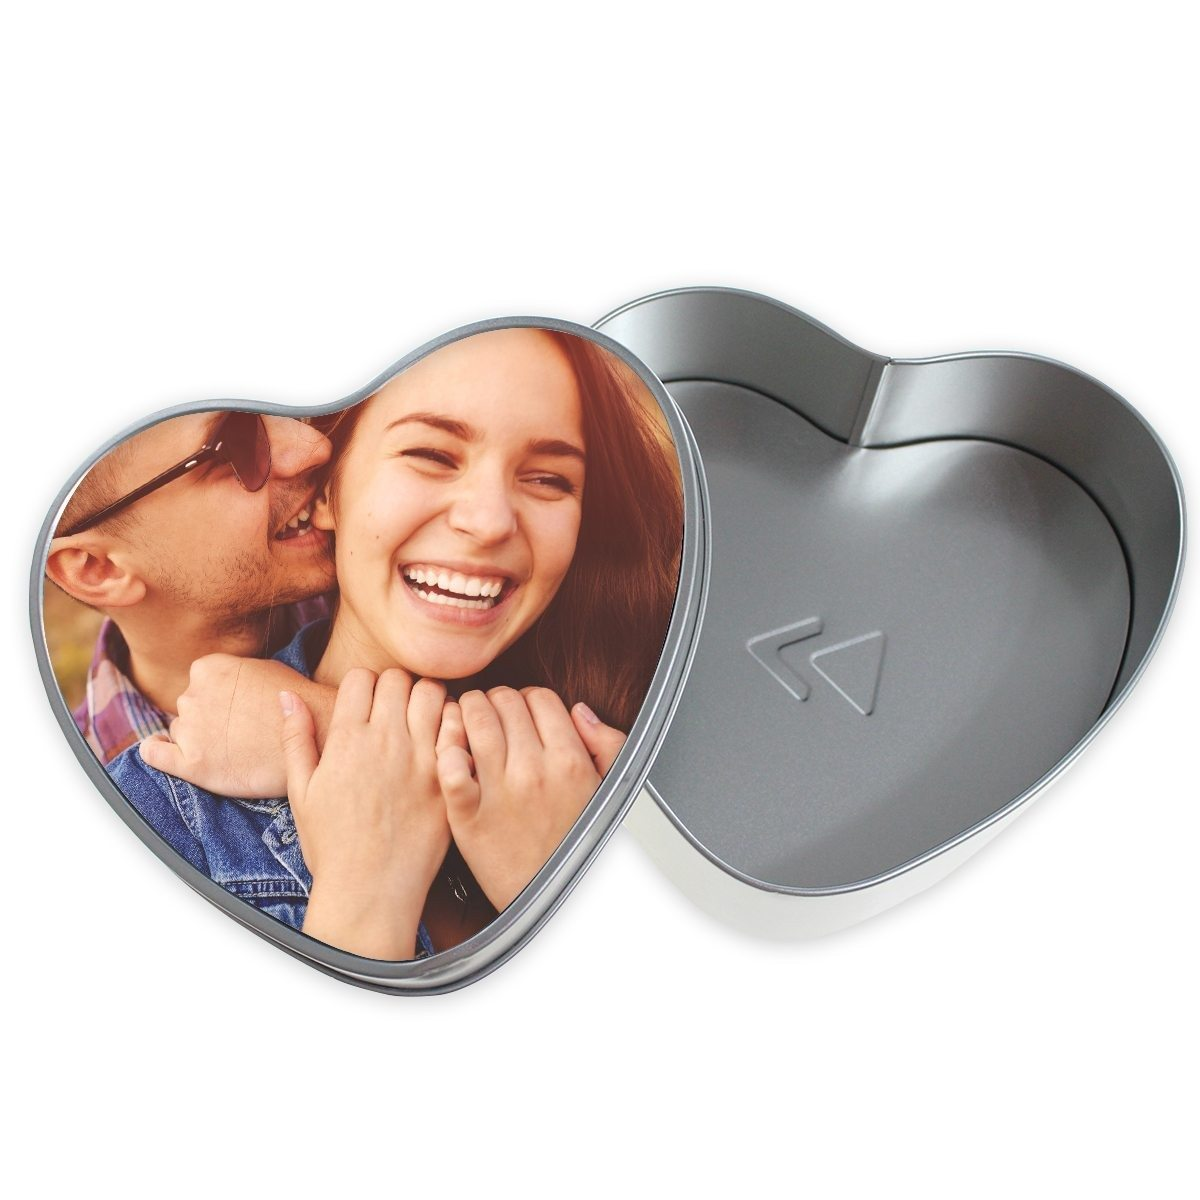 PERSONALIZED HEART SHAPED METALL GIFTBOX